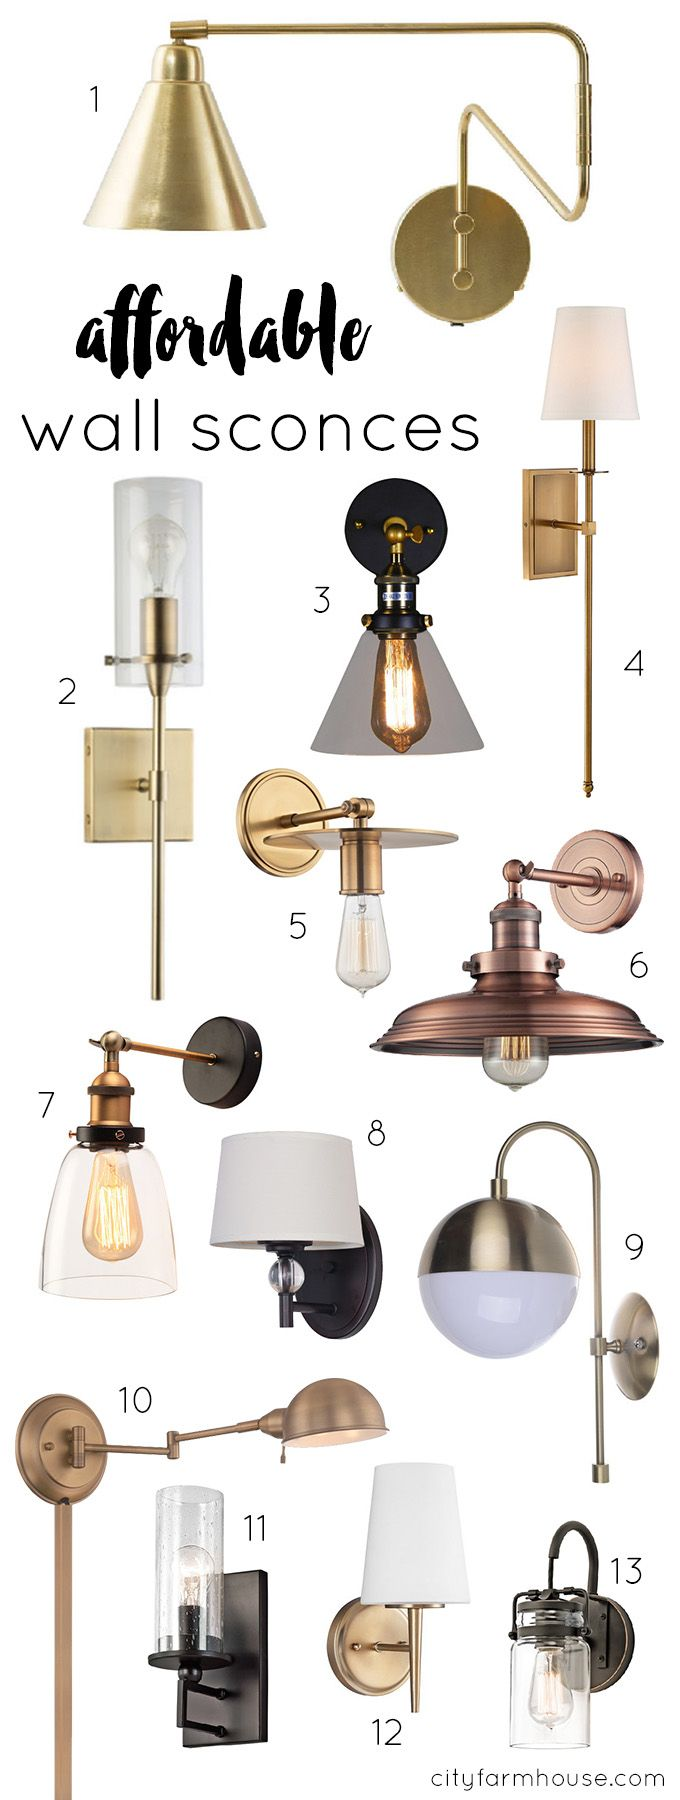 13 Affordable Wall Sconces Farmhouse Wall Sconces